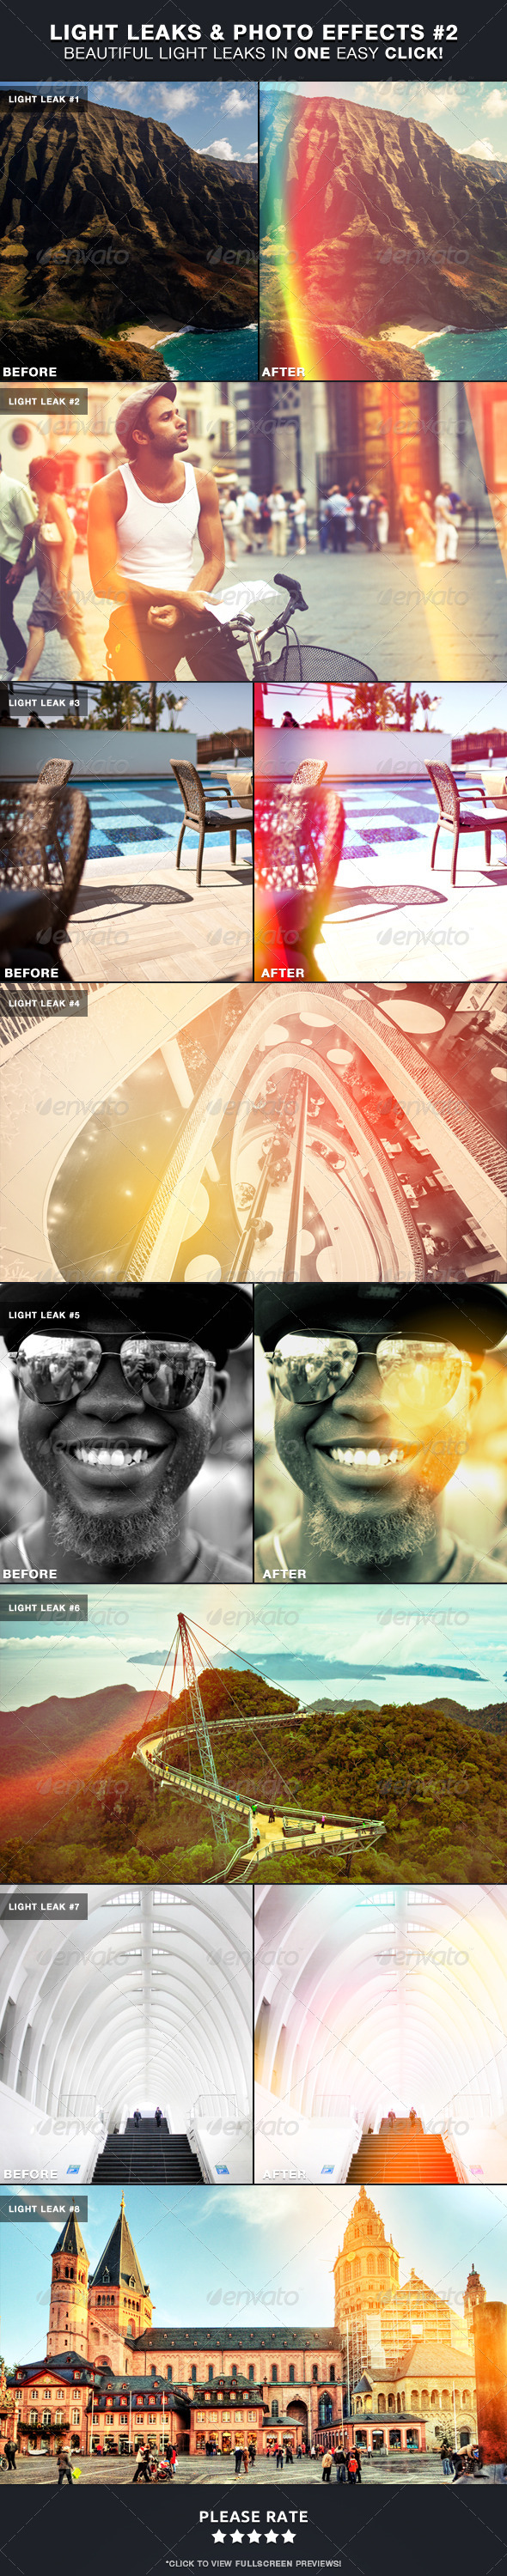 GraphicRiver Light Leaks & Photo Effects #2 4564391